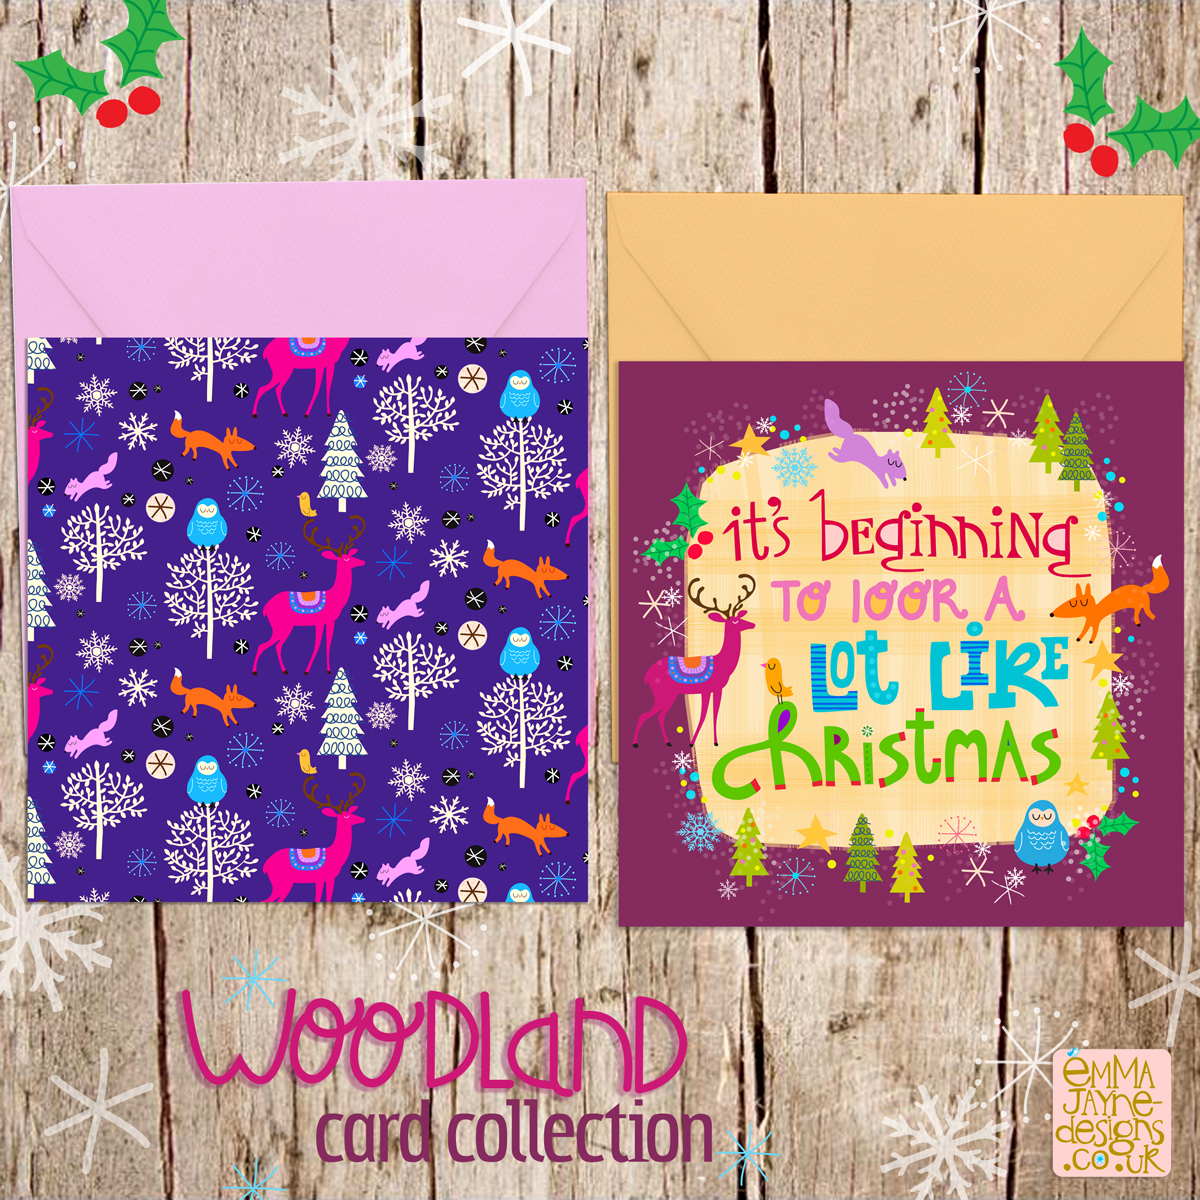 woodland-card-designs-emmajayne-designs